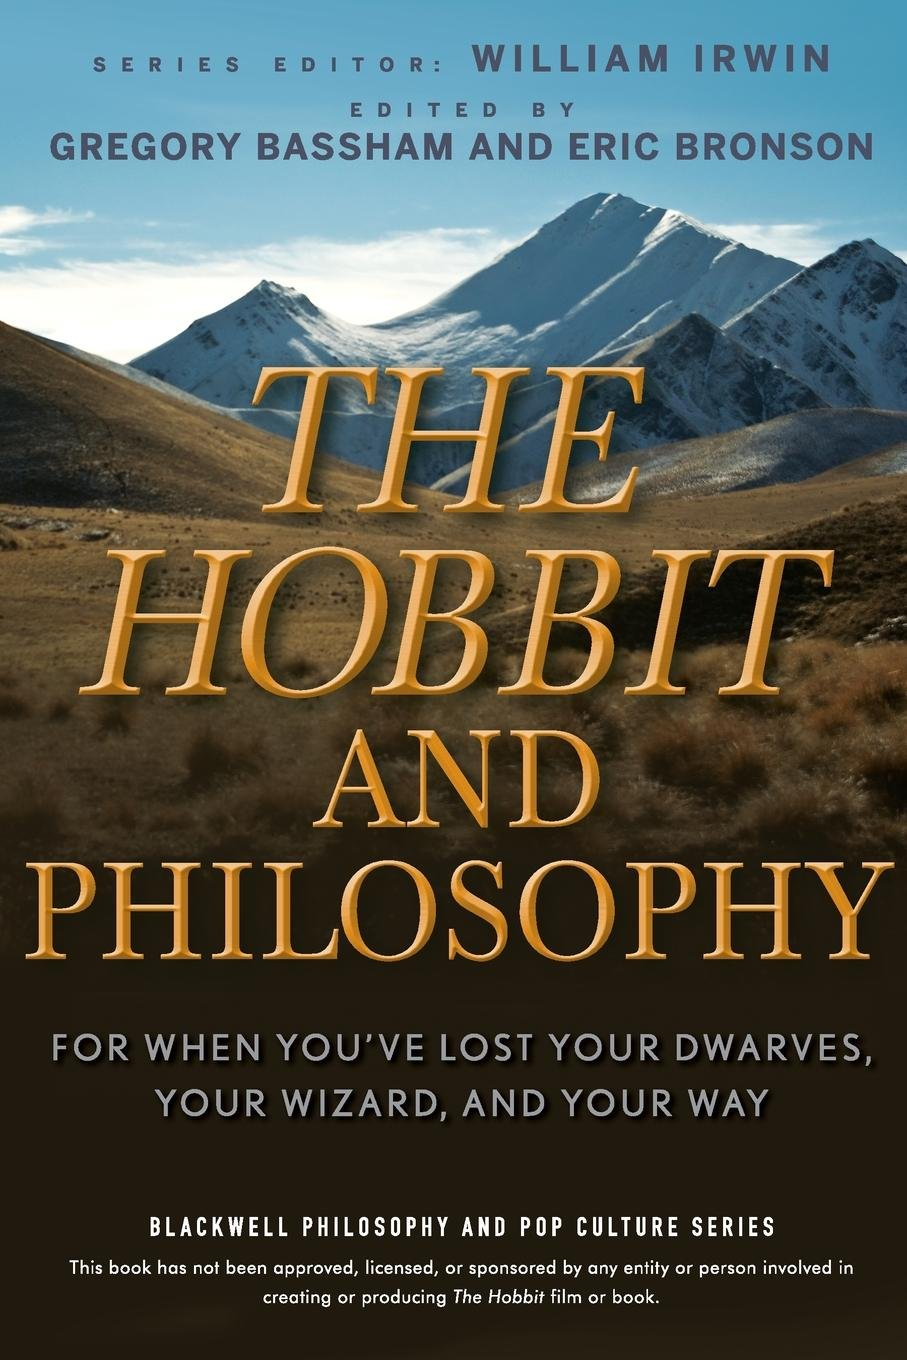 The Hobbit and Philosophy: For When You've Lost Your Dwarves, Your Wizard, and Your Way pdf